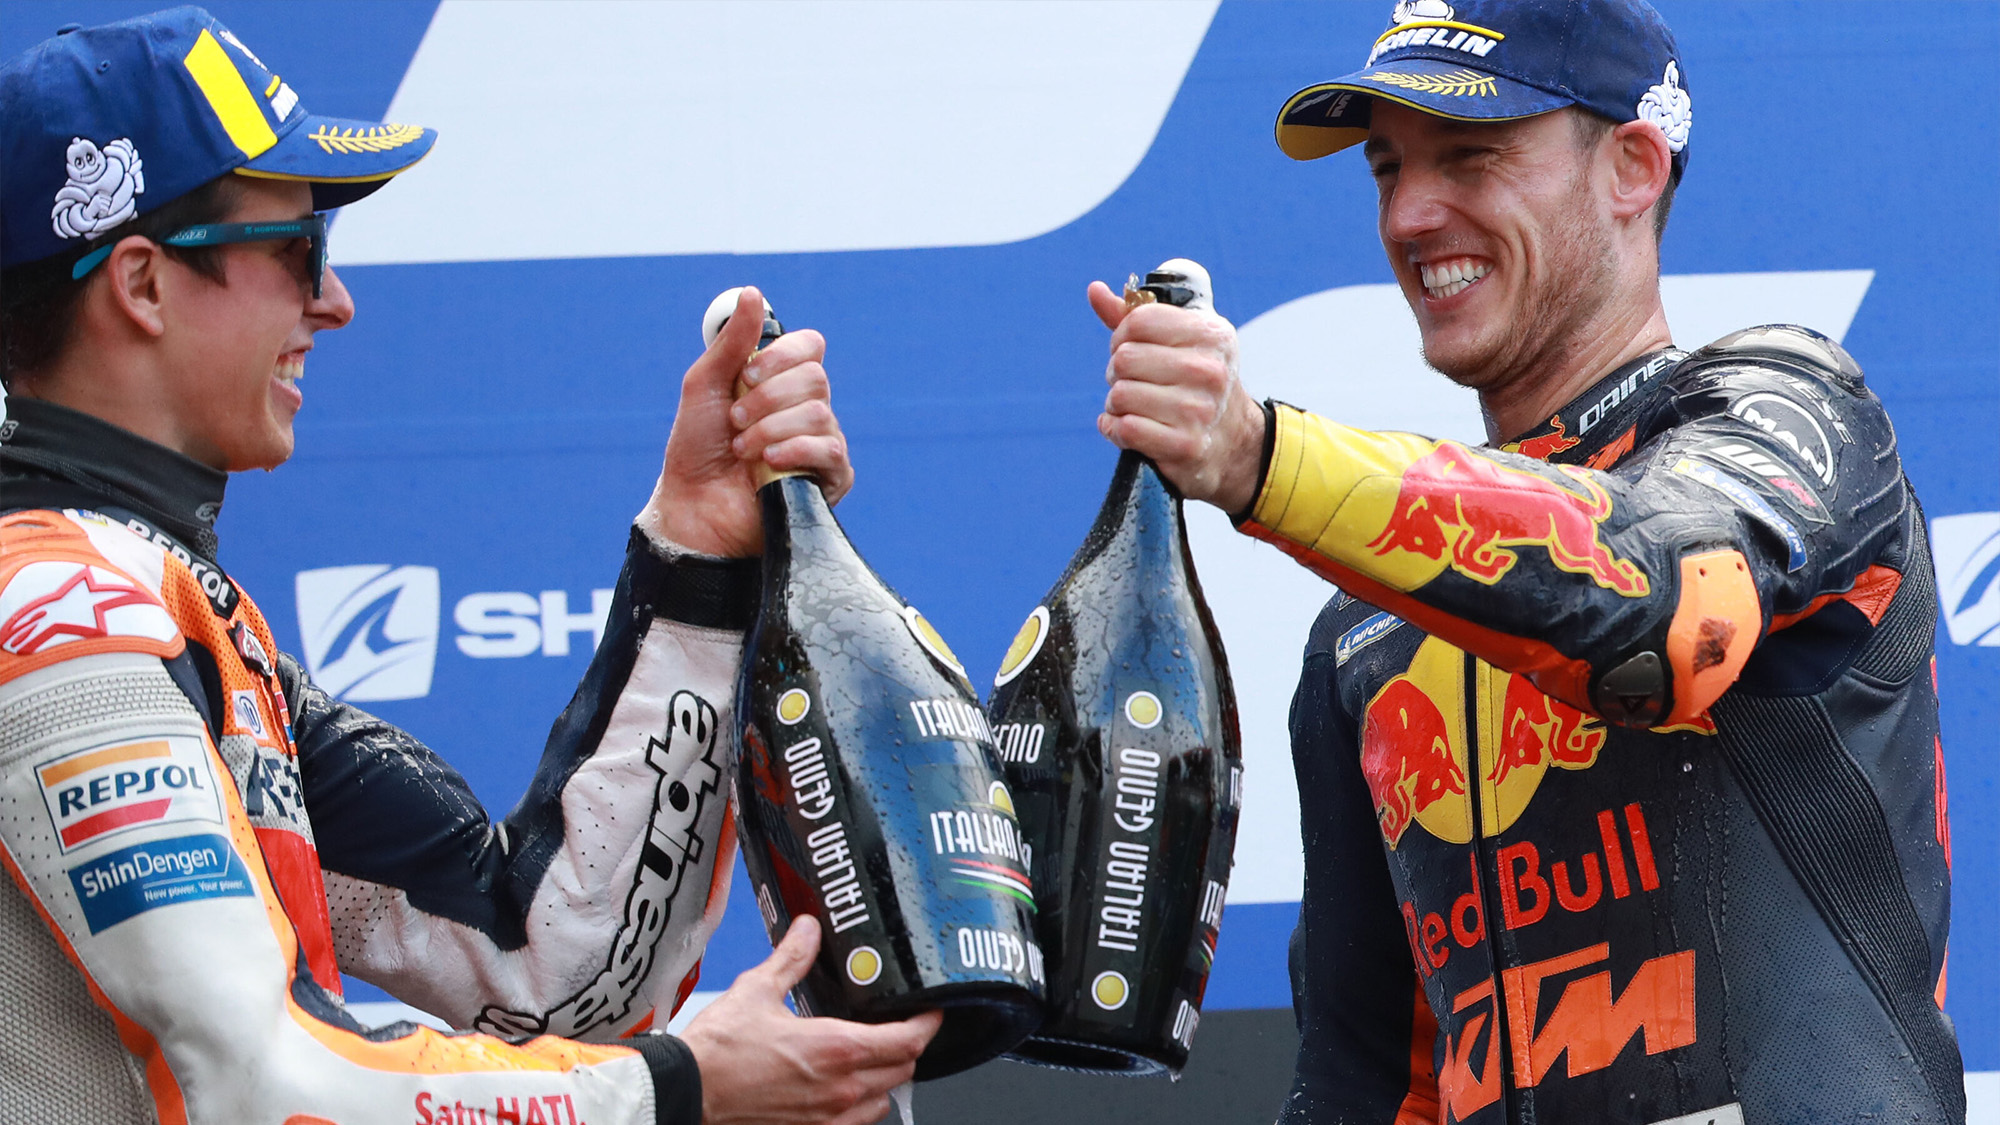 Alex Marquez and Pol Espargaro celebrate on the podium at Le Mans after the 2020 MotoGP French Grand Prix